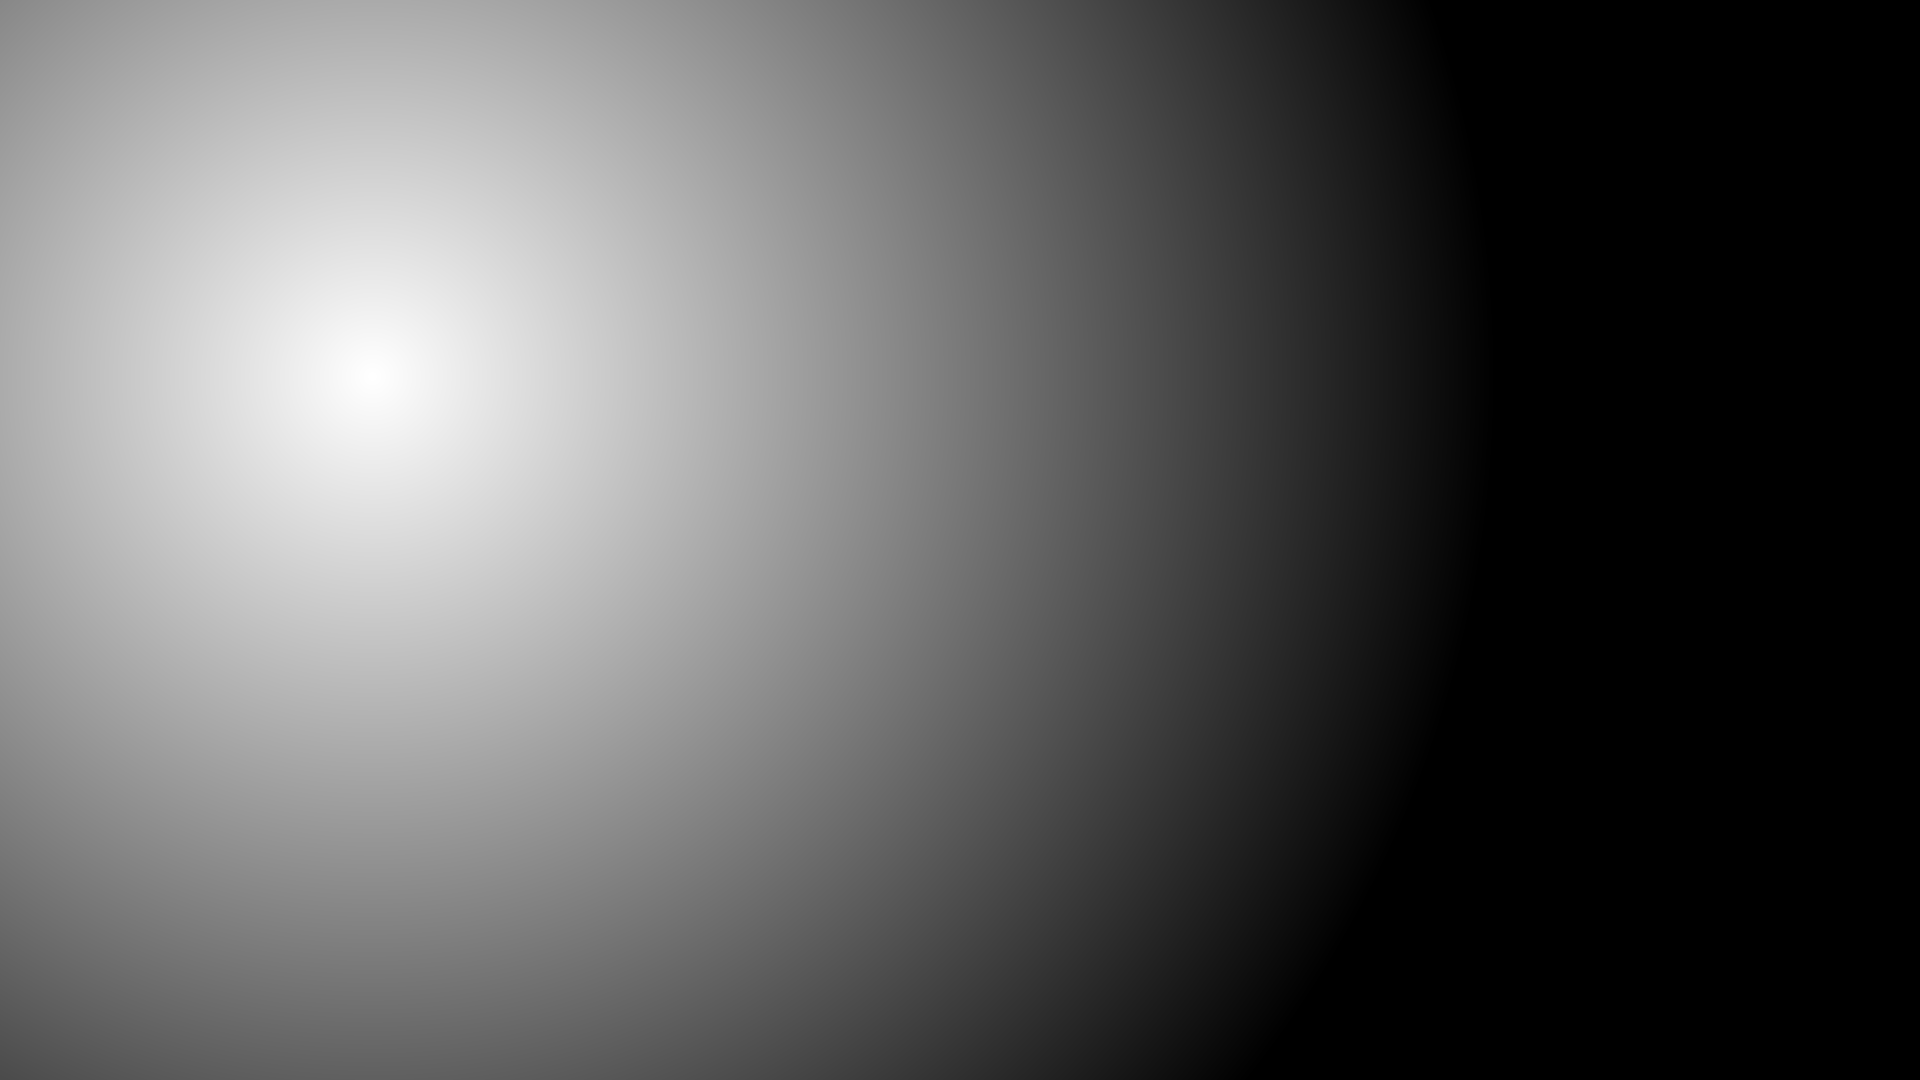 Black And White Gradient Wallpapers Top Free Black And